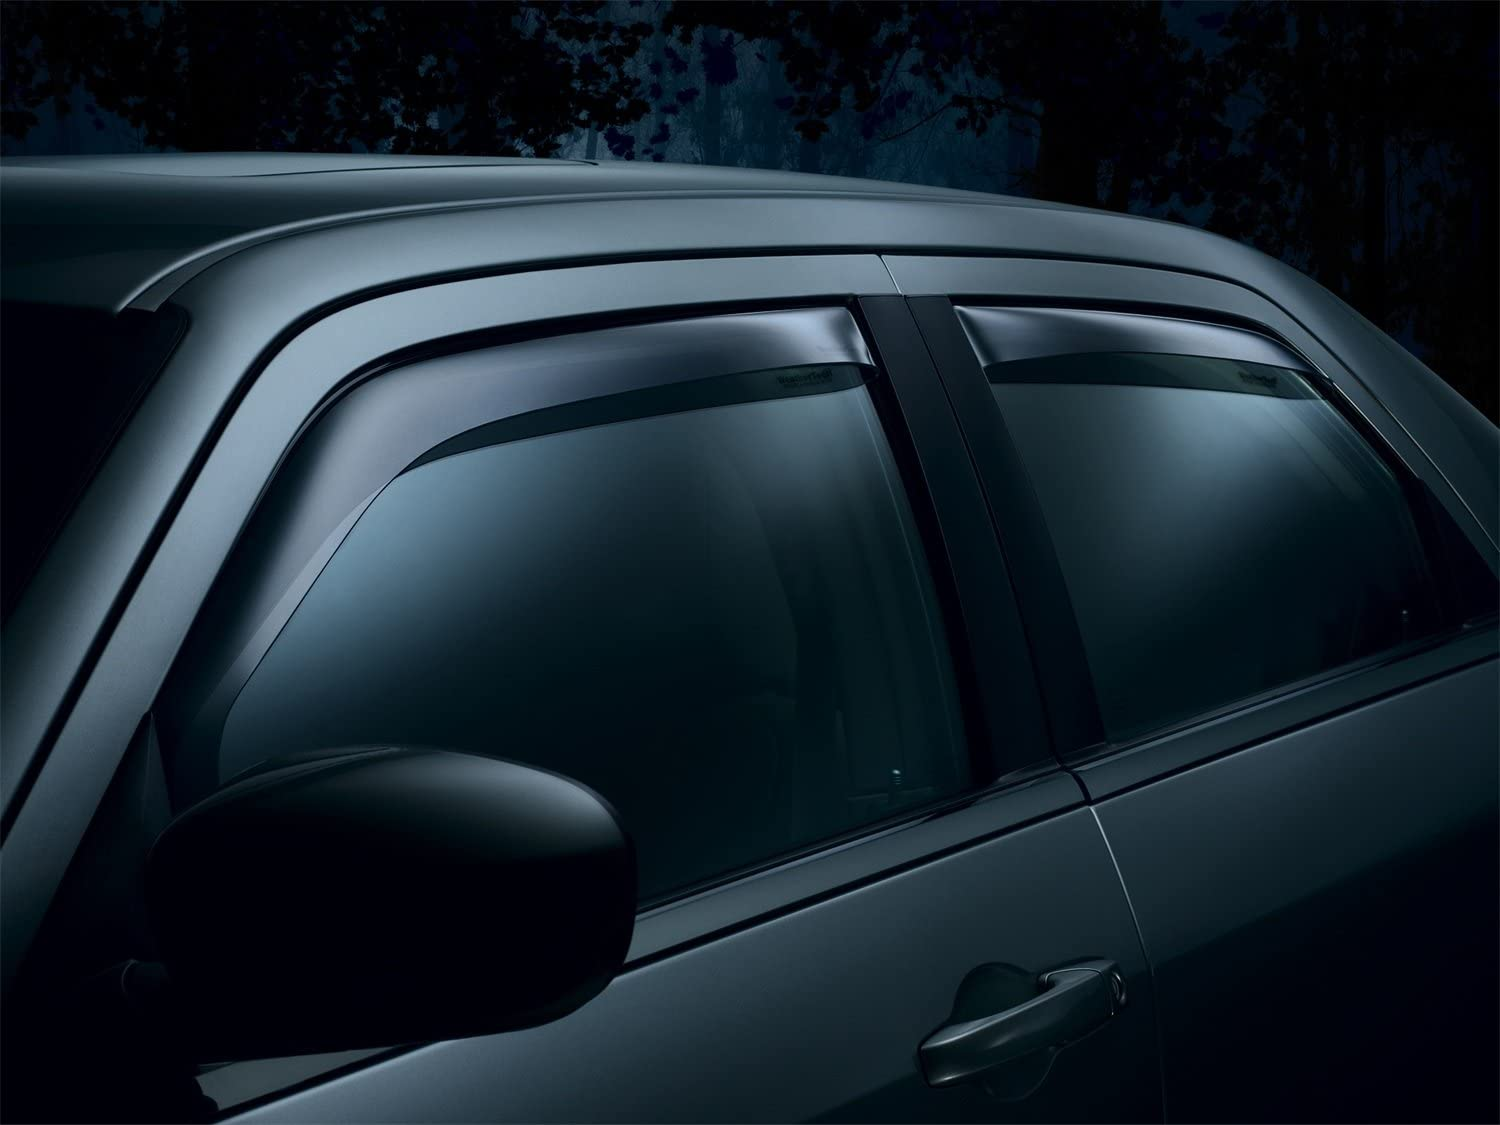 Dark Smoke WeatherTech Custom Fit Front /& Rear Side Window Deflectors for Toyota RAV4